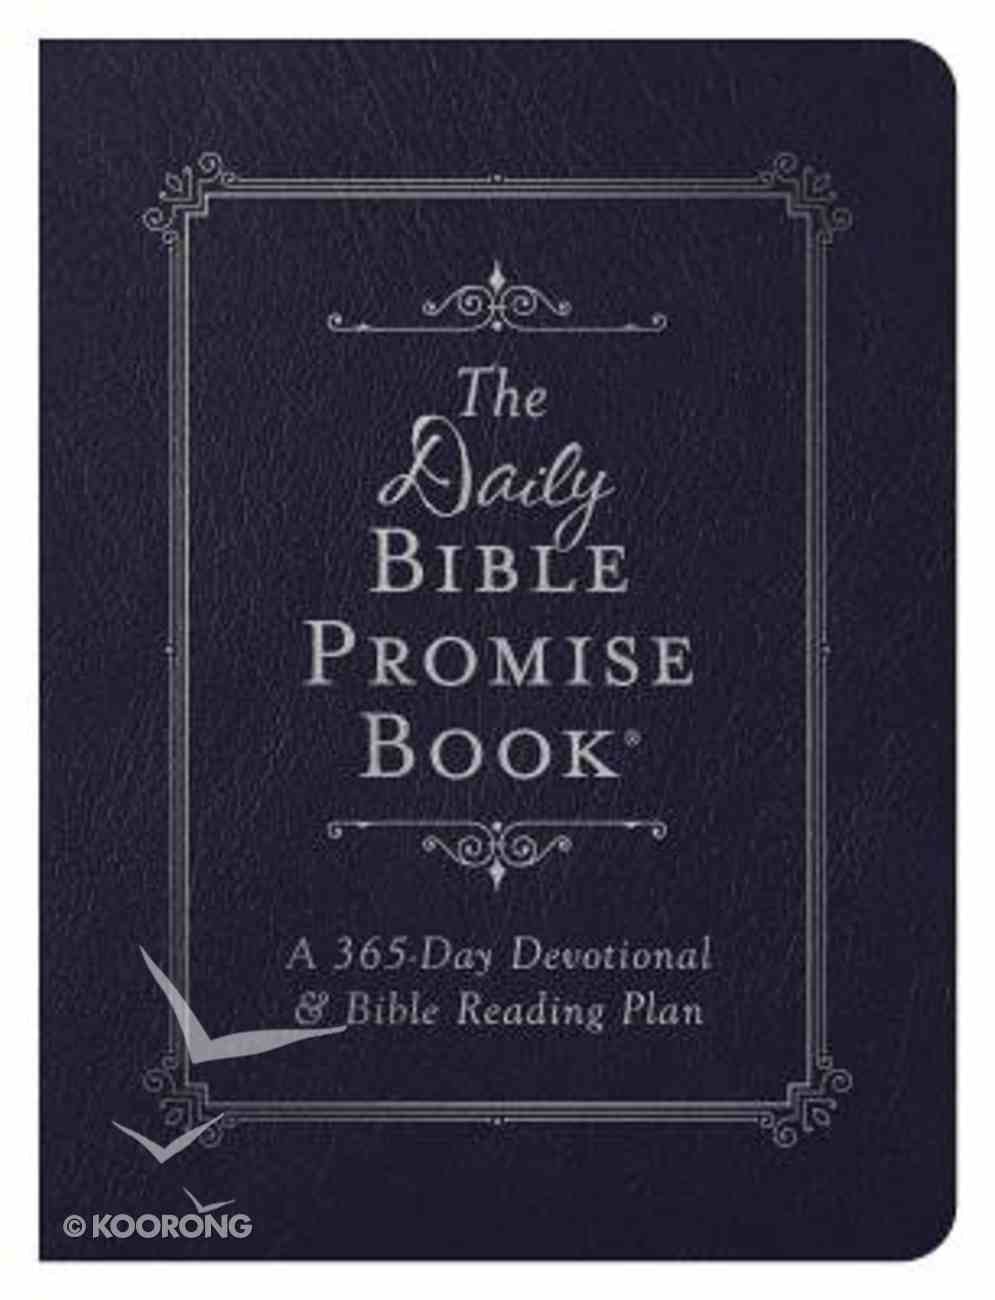 The Daily Bible Promise Book: A 365-Day Devotional and Bible Reading Plan Imitation Leather